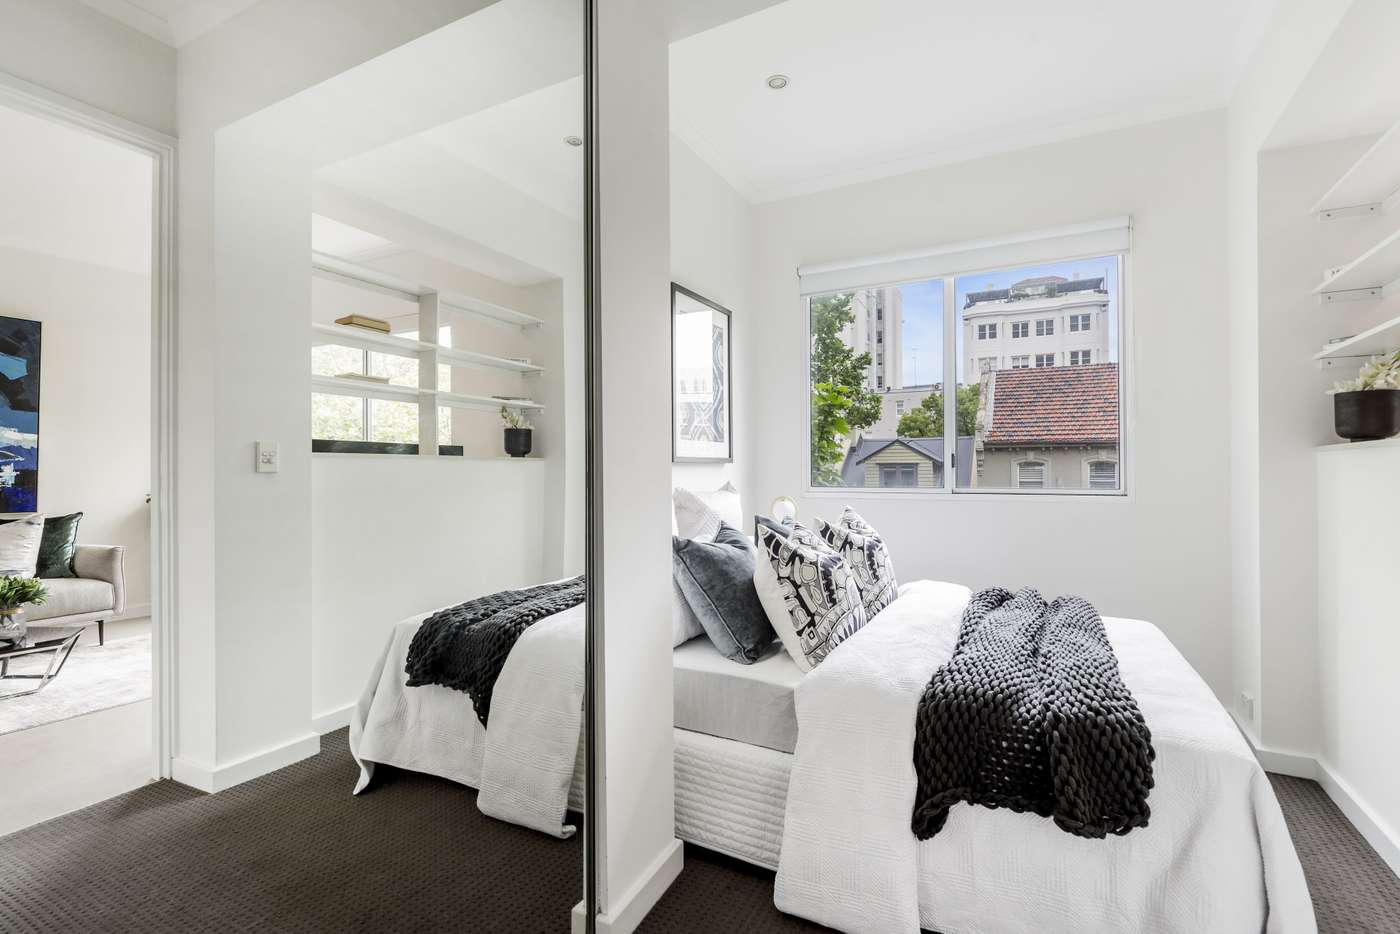 Fifth view of Homely apartment listing, 21/165 Victoria Street, Potts Point NSW 2011